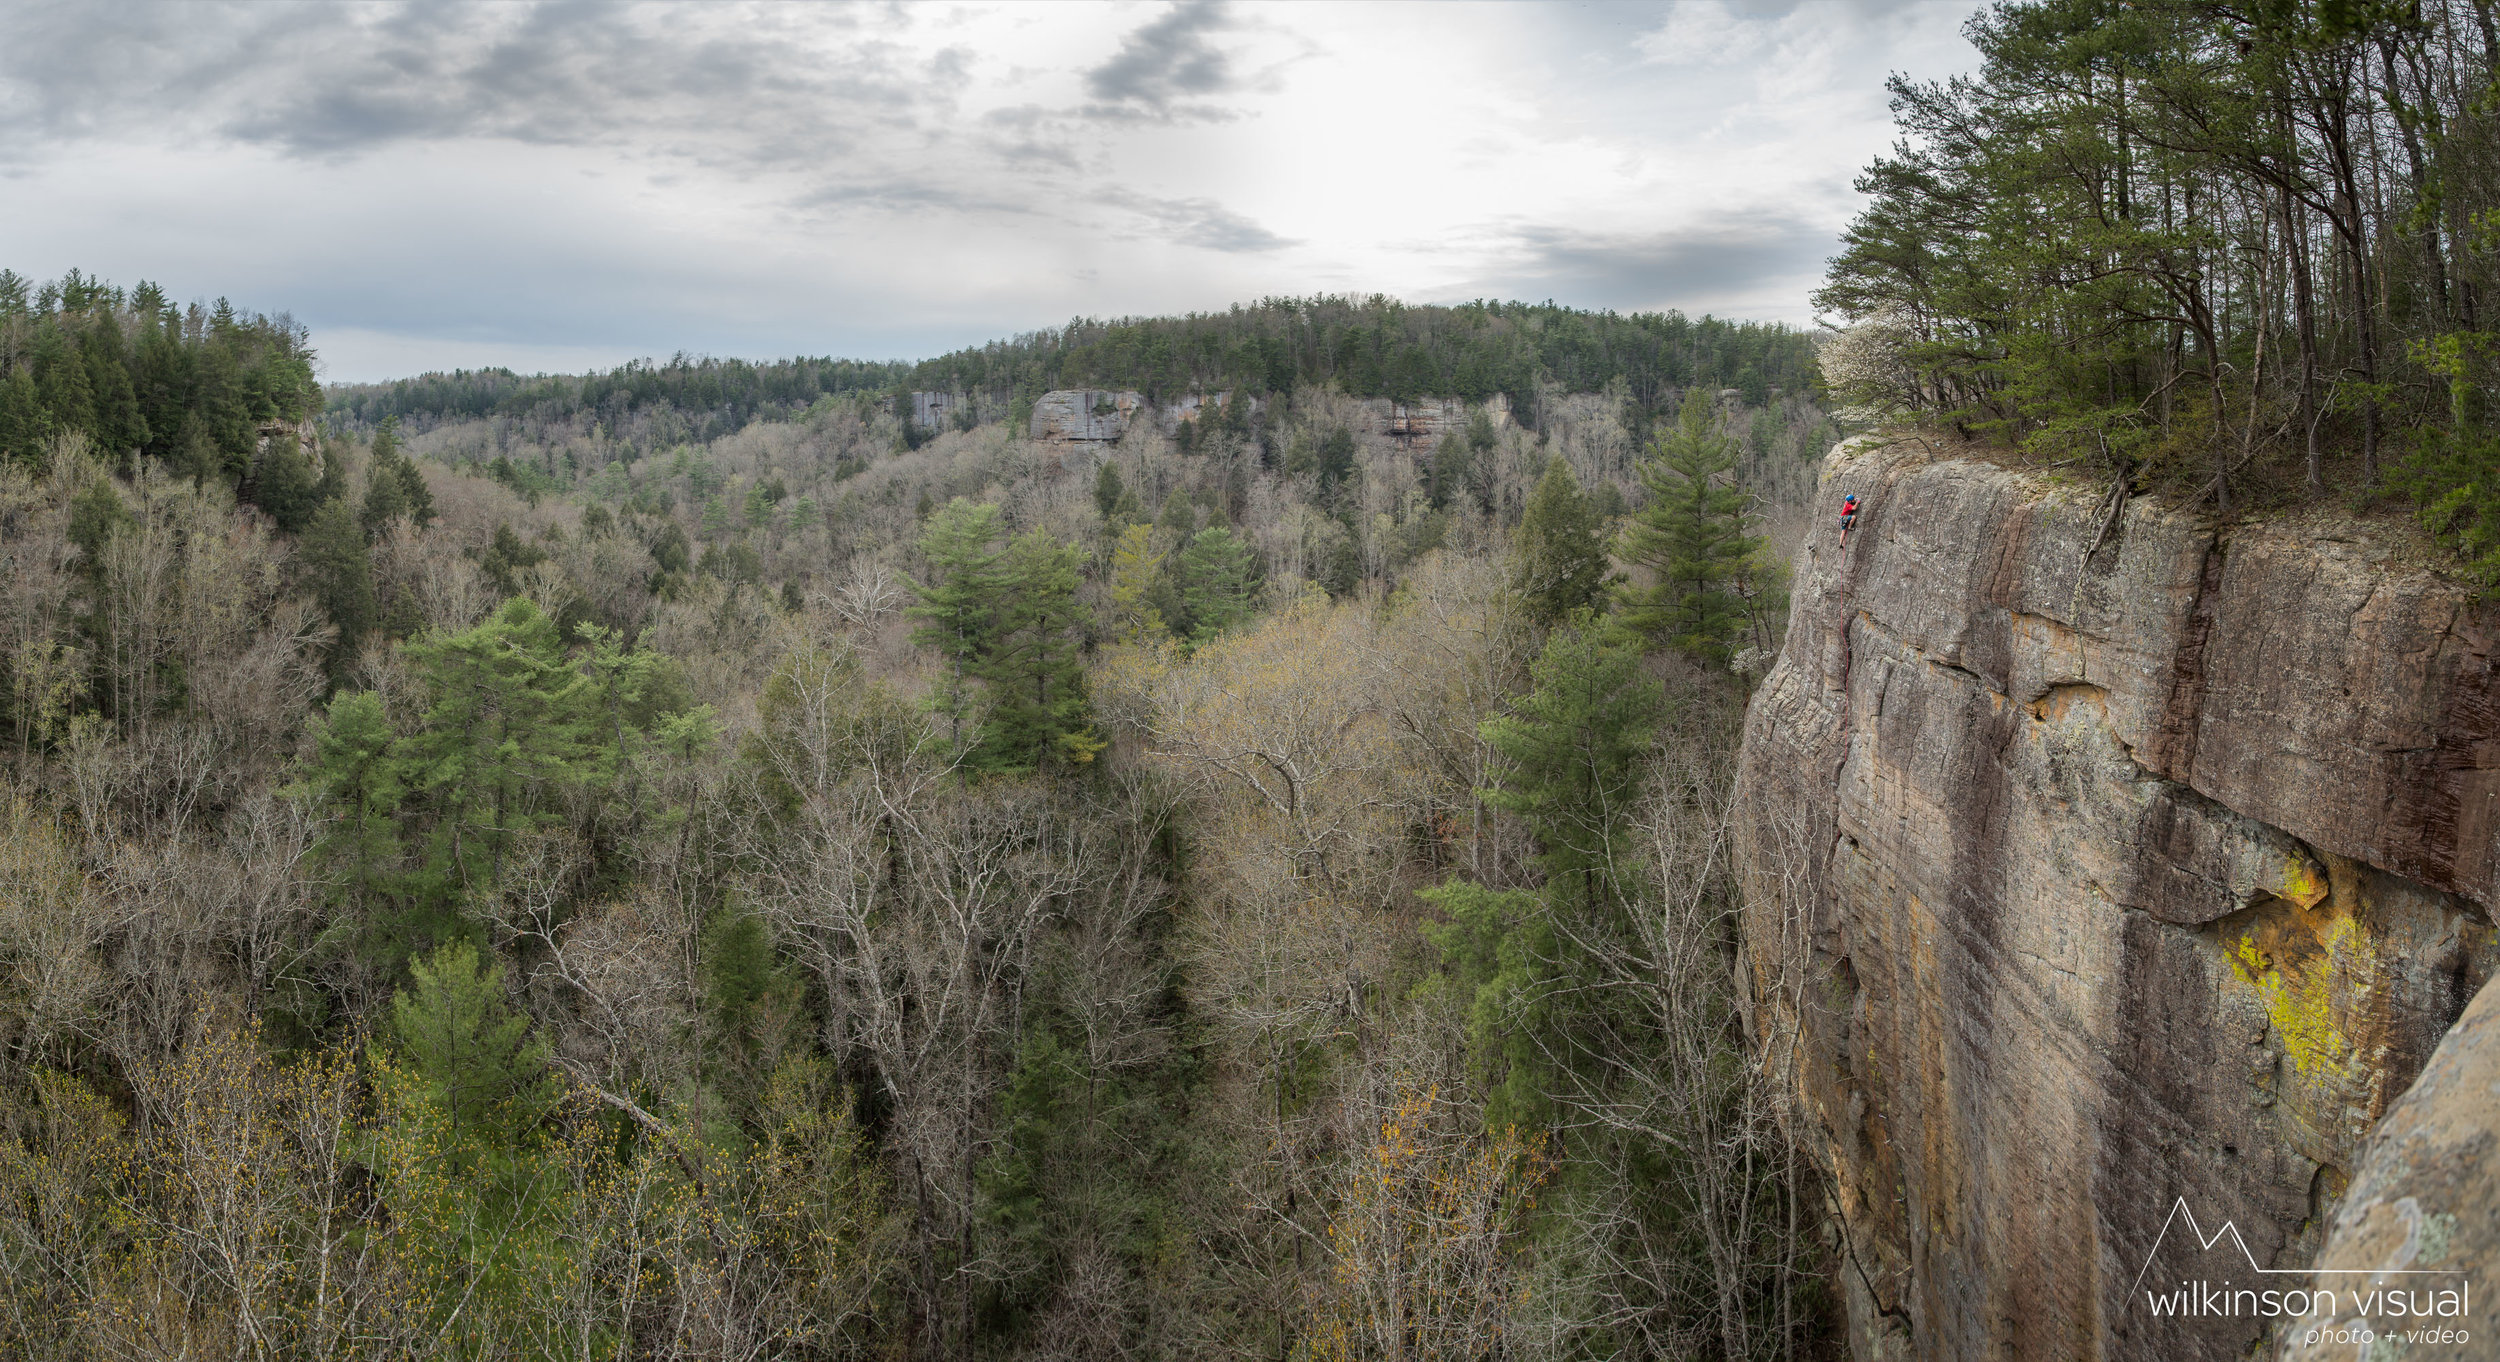 A climber nearing the top of a first ascent not far from Kentucky's Red River Gorge. (Panoramic image stitched from 6+ images)